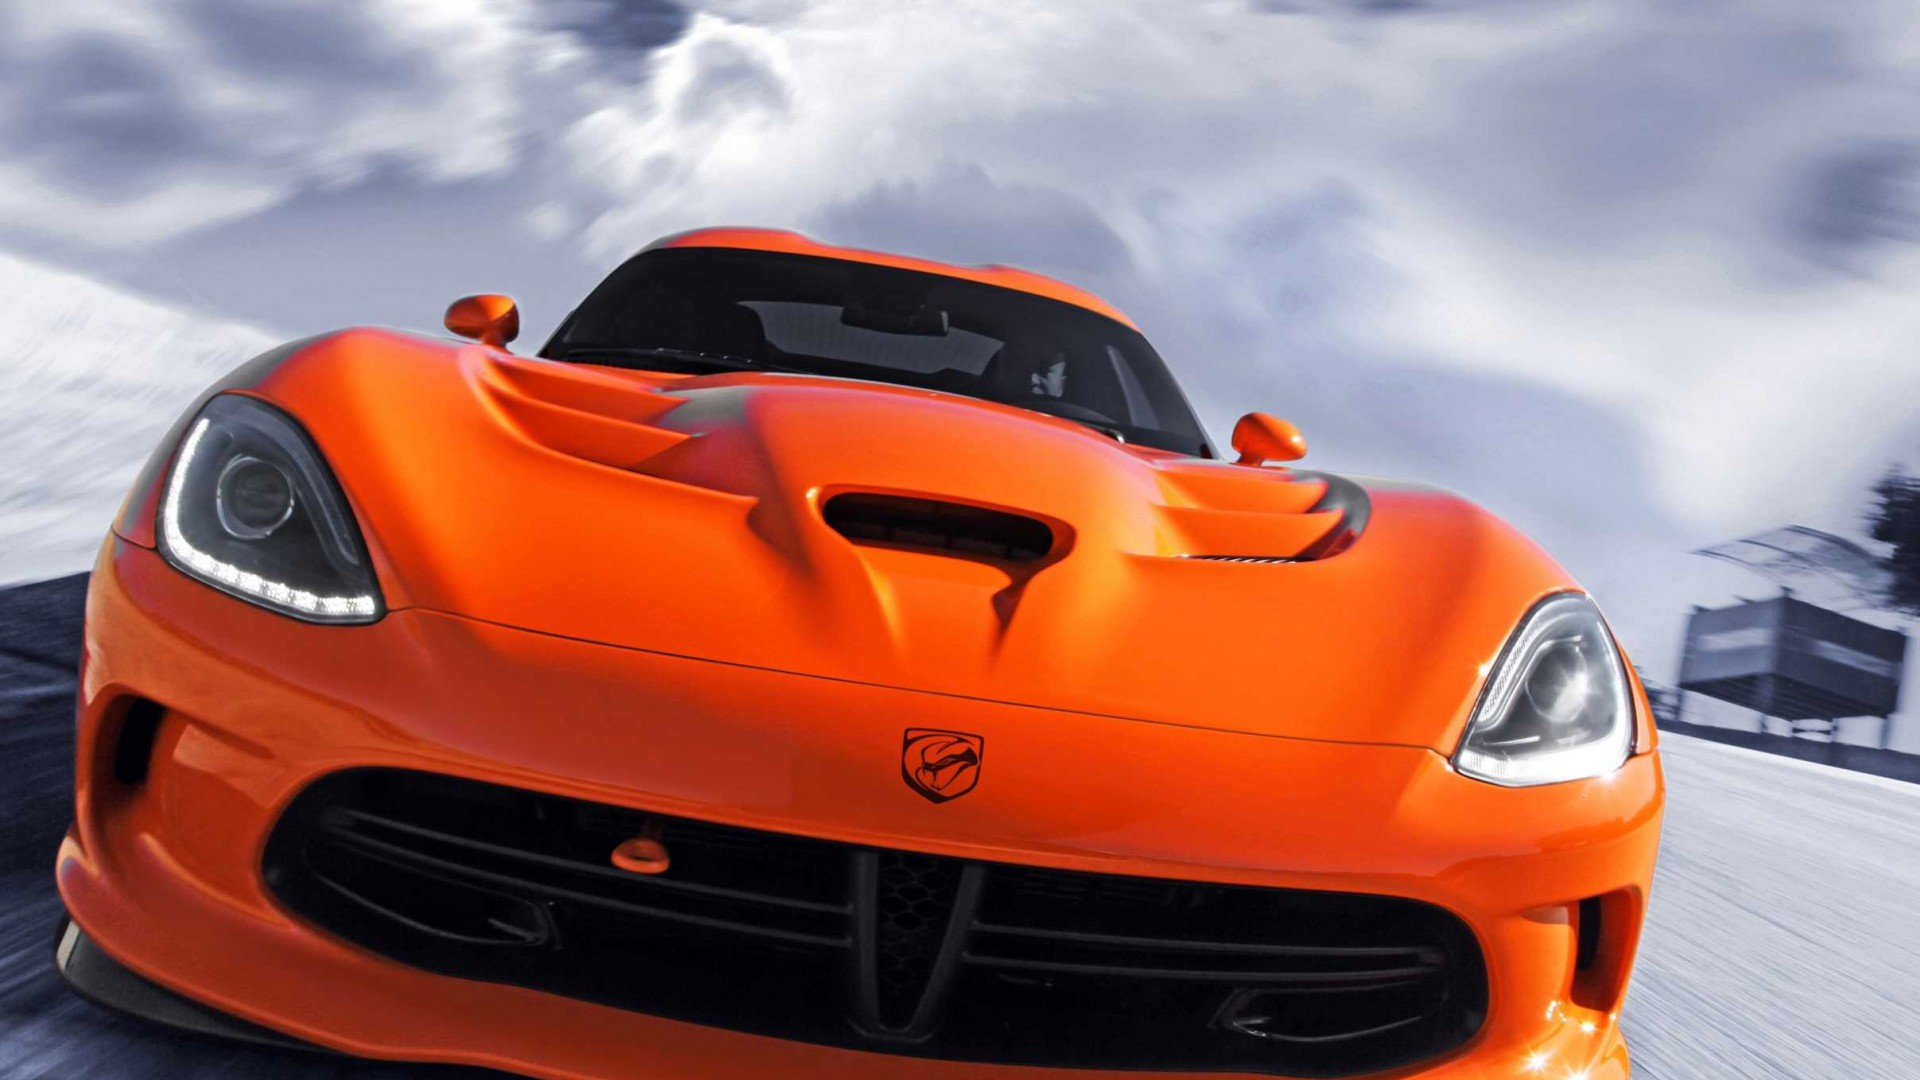 Car Wallpapers Backgrounds Hd: 2014 SRT Viper TA Car Wallpaper